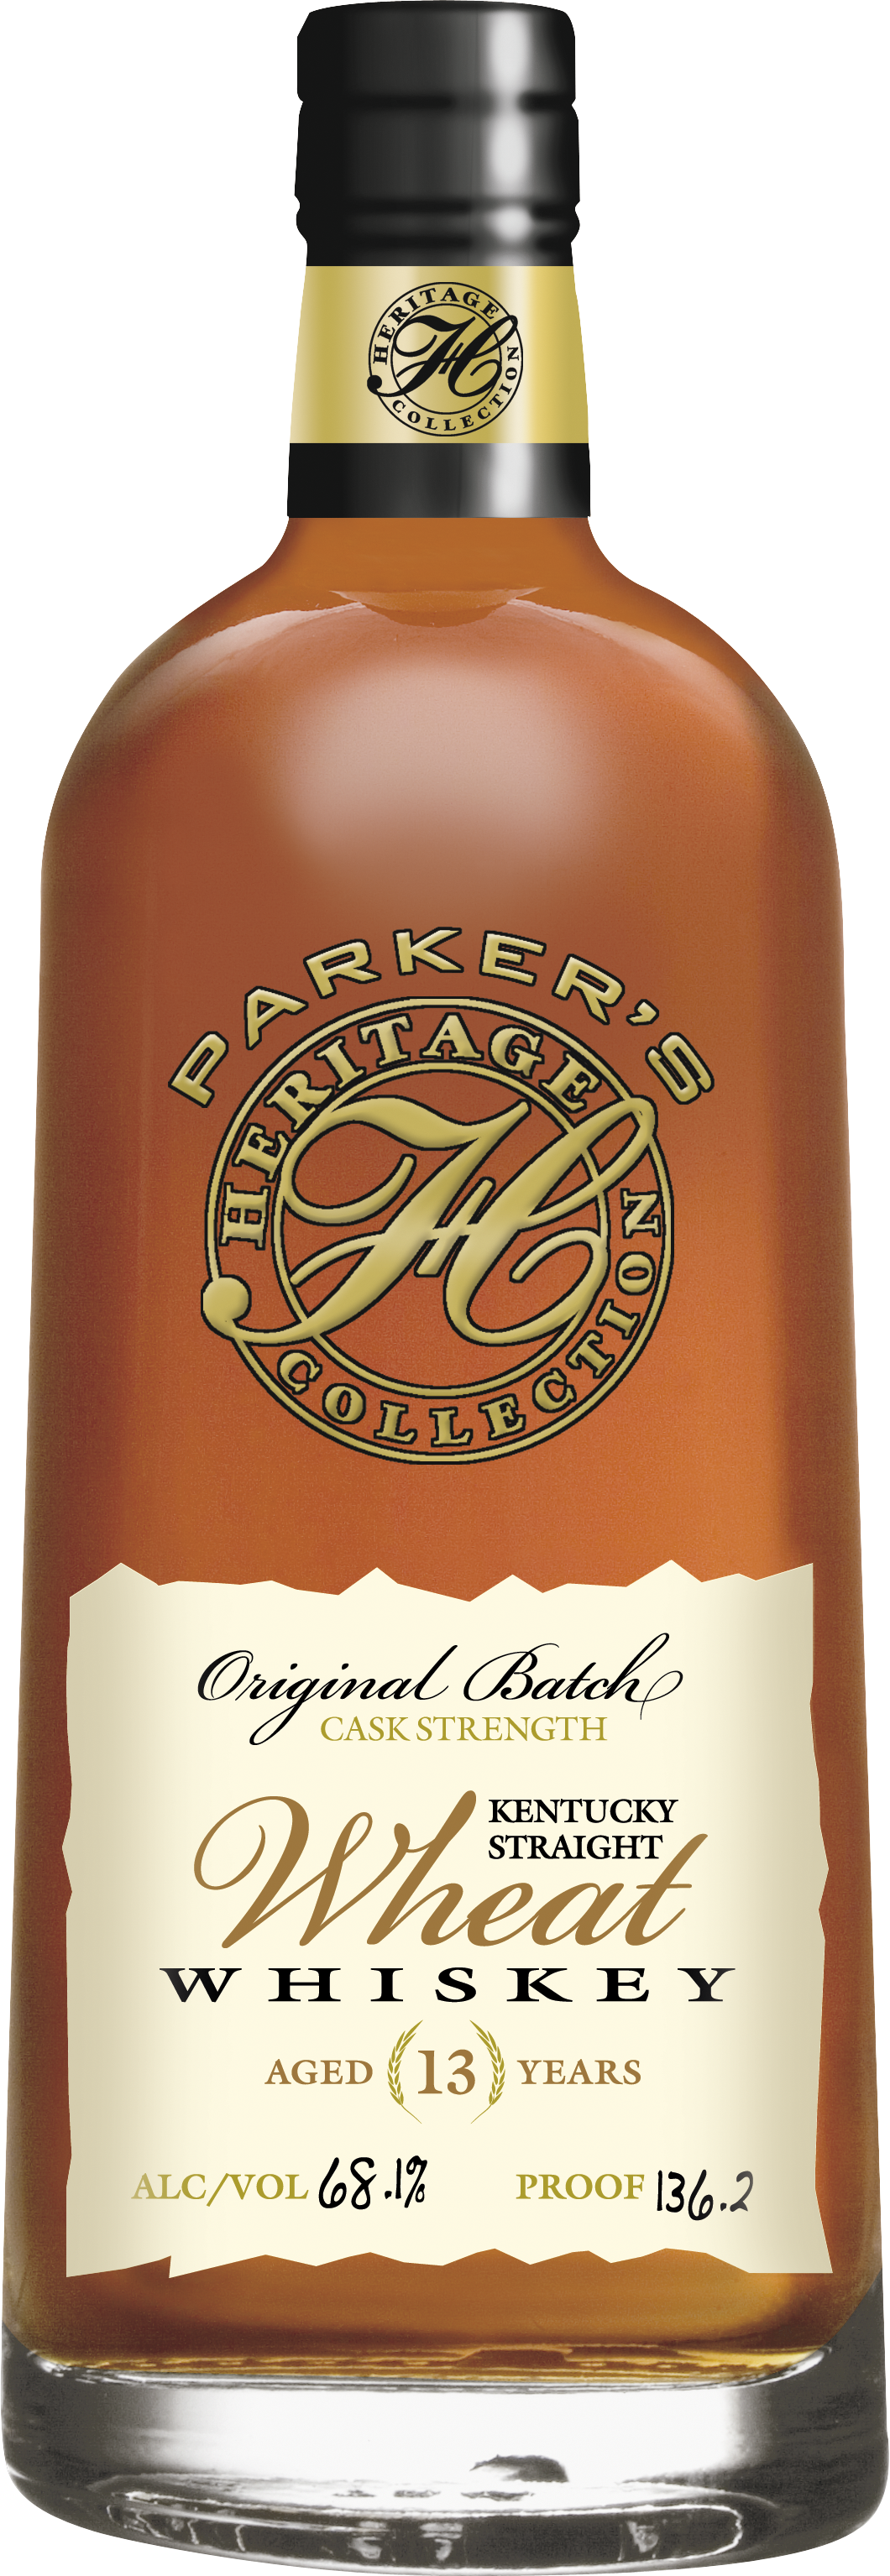 Parker's Heritage Collection Original Batch Wheat Whiskey 13 Years Old (2014)